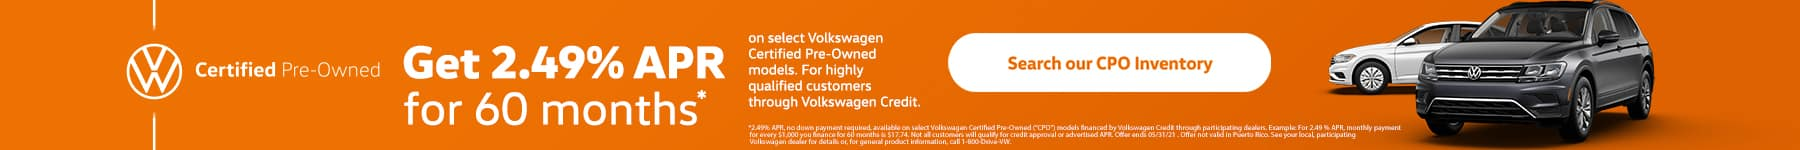 2.49% APR for 60 Months on Select VW CPO Models